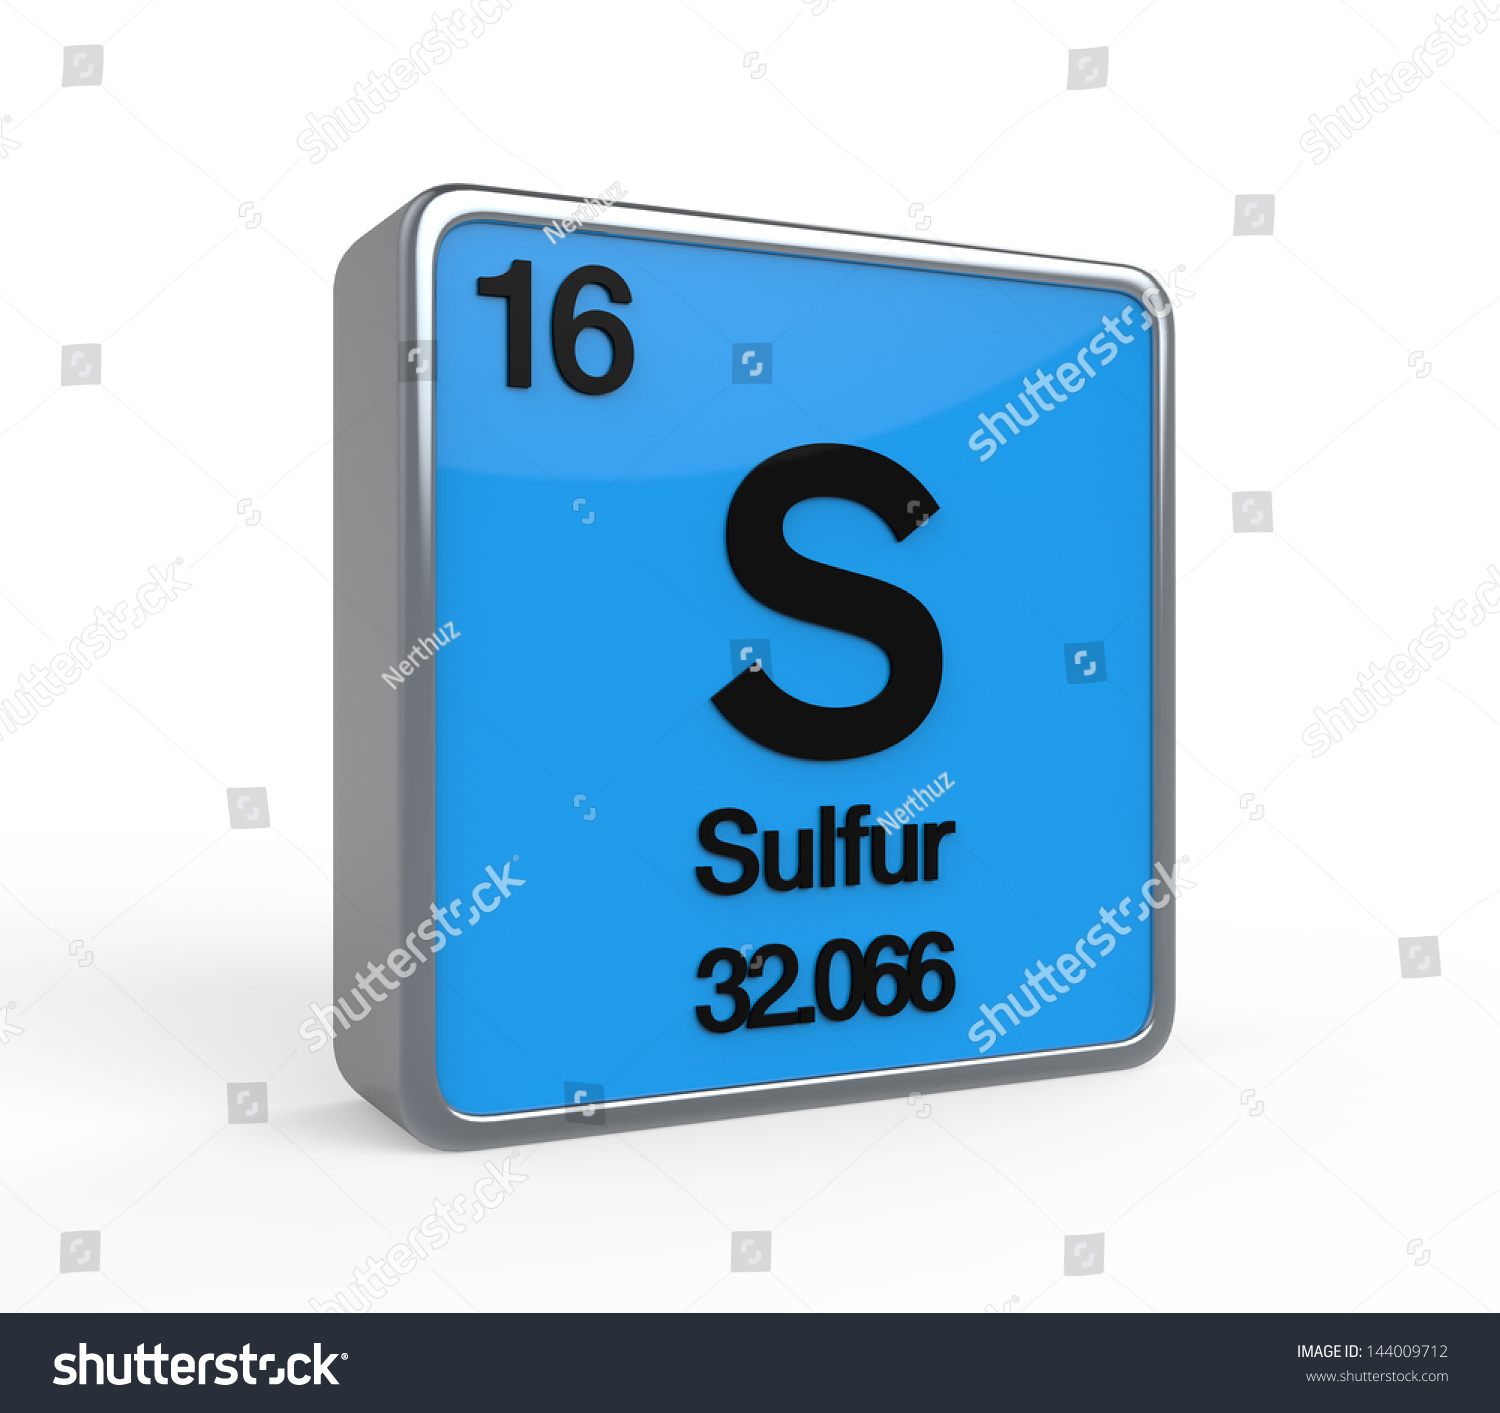 Sulfur element periodic table stock illustration 144009712 sulfur element periodic table gamestrikefo Image collections